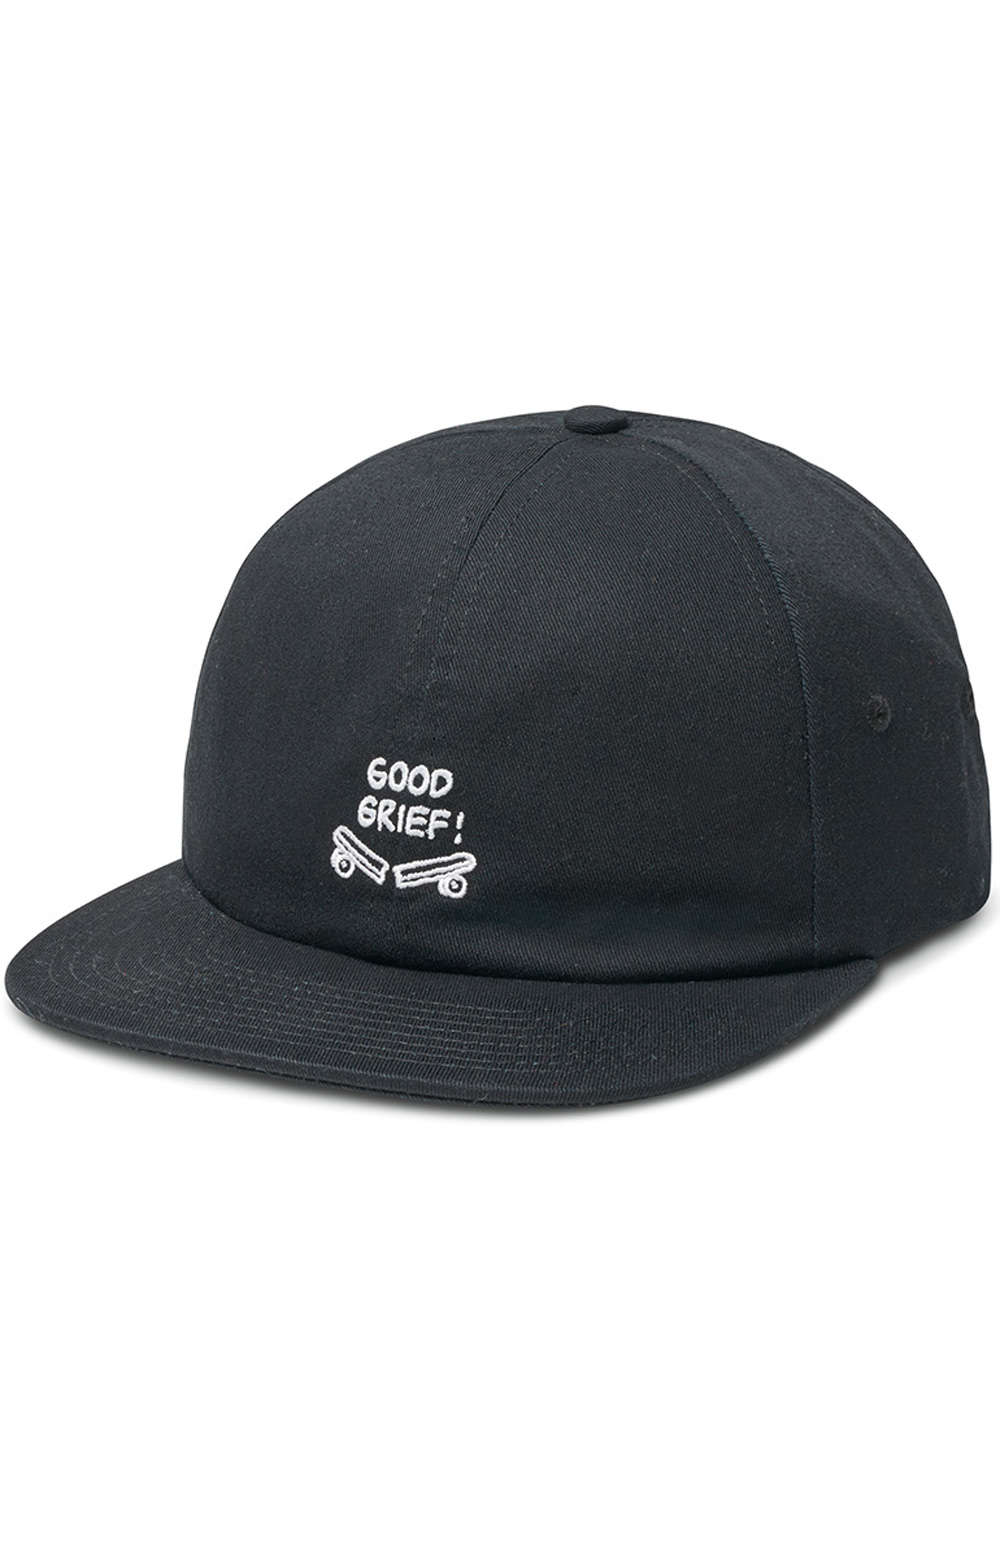 6a926fa4 Good Grief Snap-Back Hat. Loading... Home · Brands · Vans x Peanuts ...